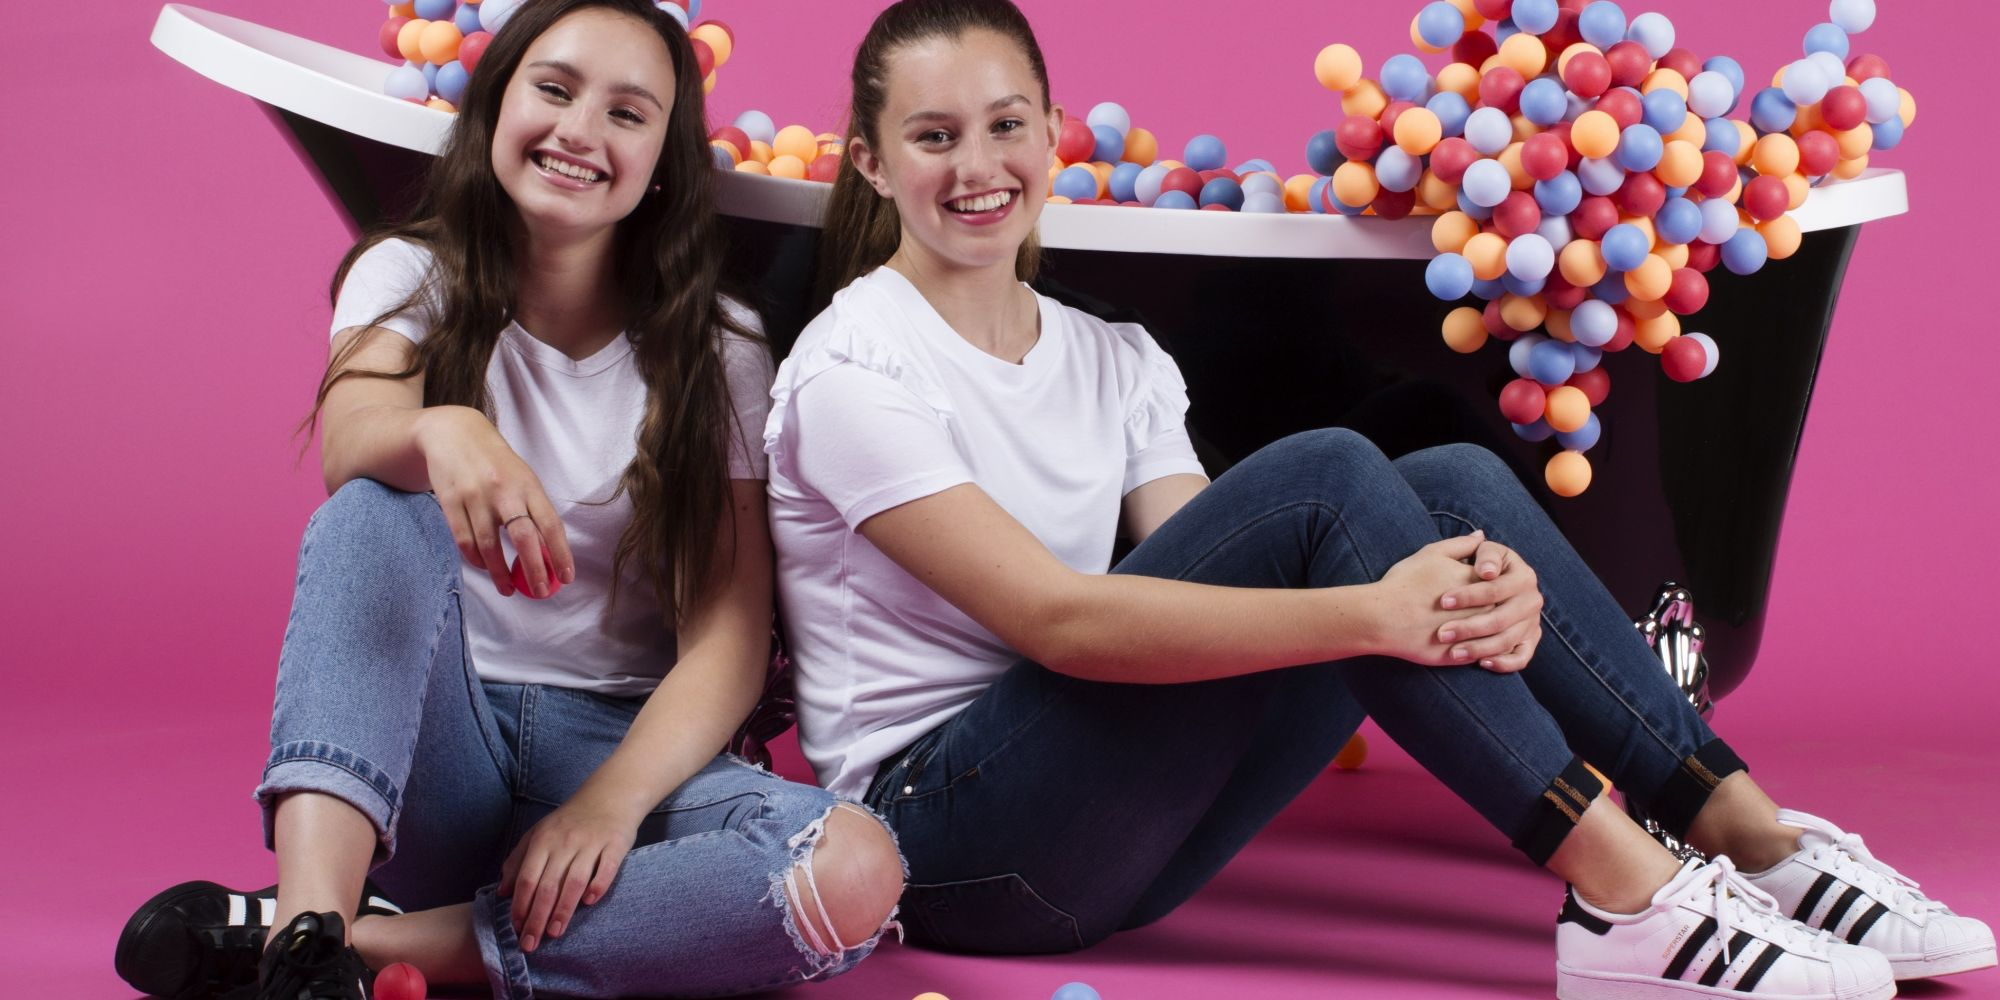 These Teens Launched A Bath Brand At Ulta Beauty (We Feel Inept)